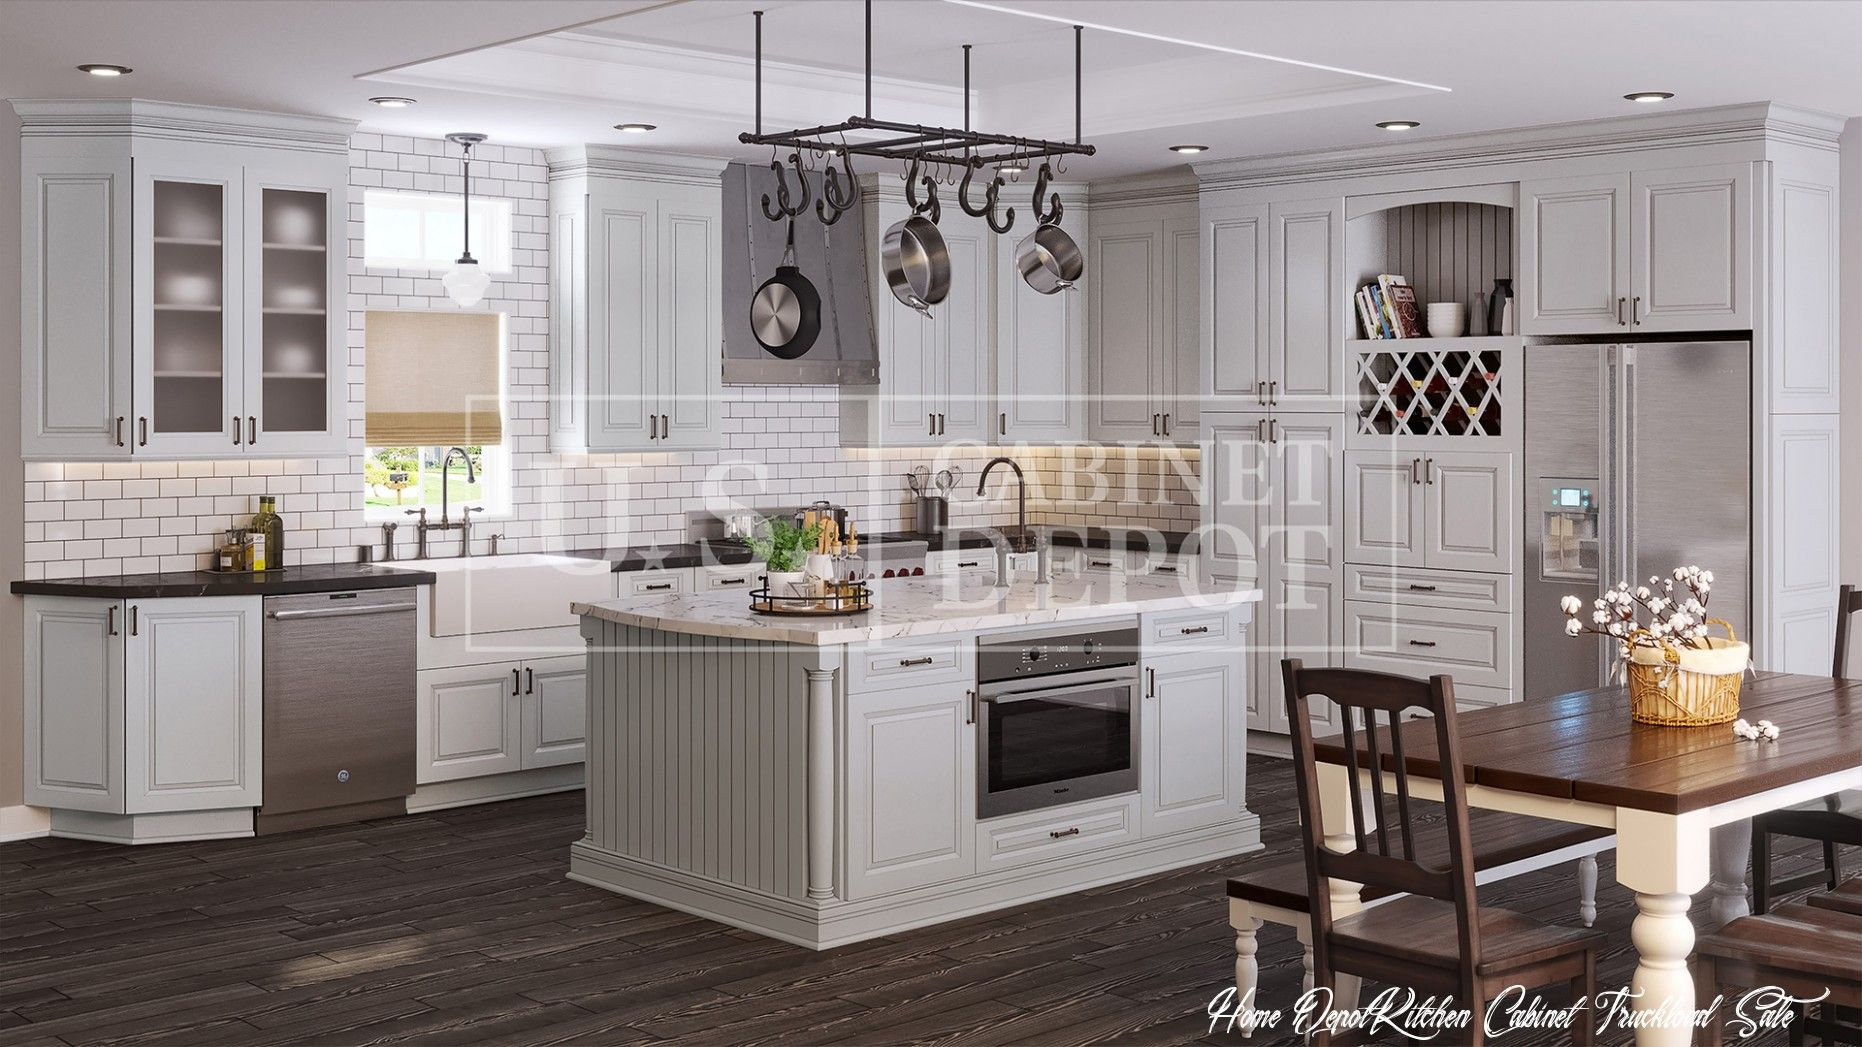 11 Home Depot Kitchen Cabinet Truckload Sale In 2020 Online Kitchen Cabinets Driftwood Kitchen Grey Kitchen Cabinets